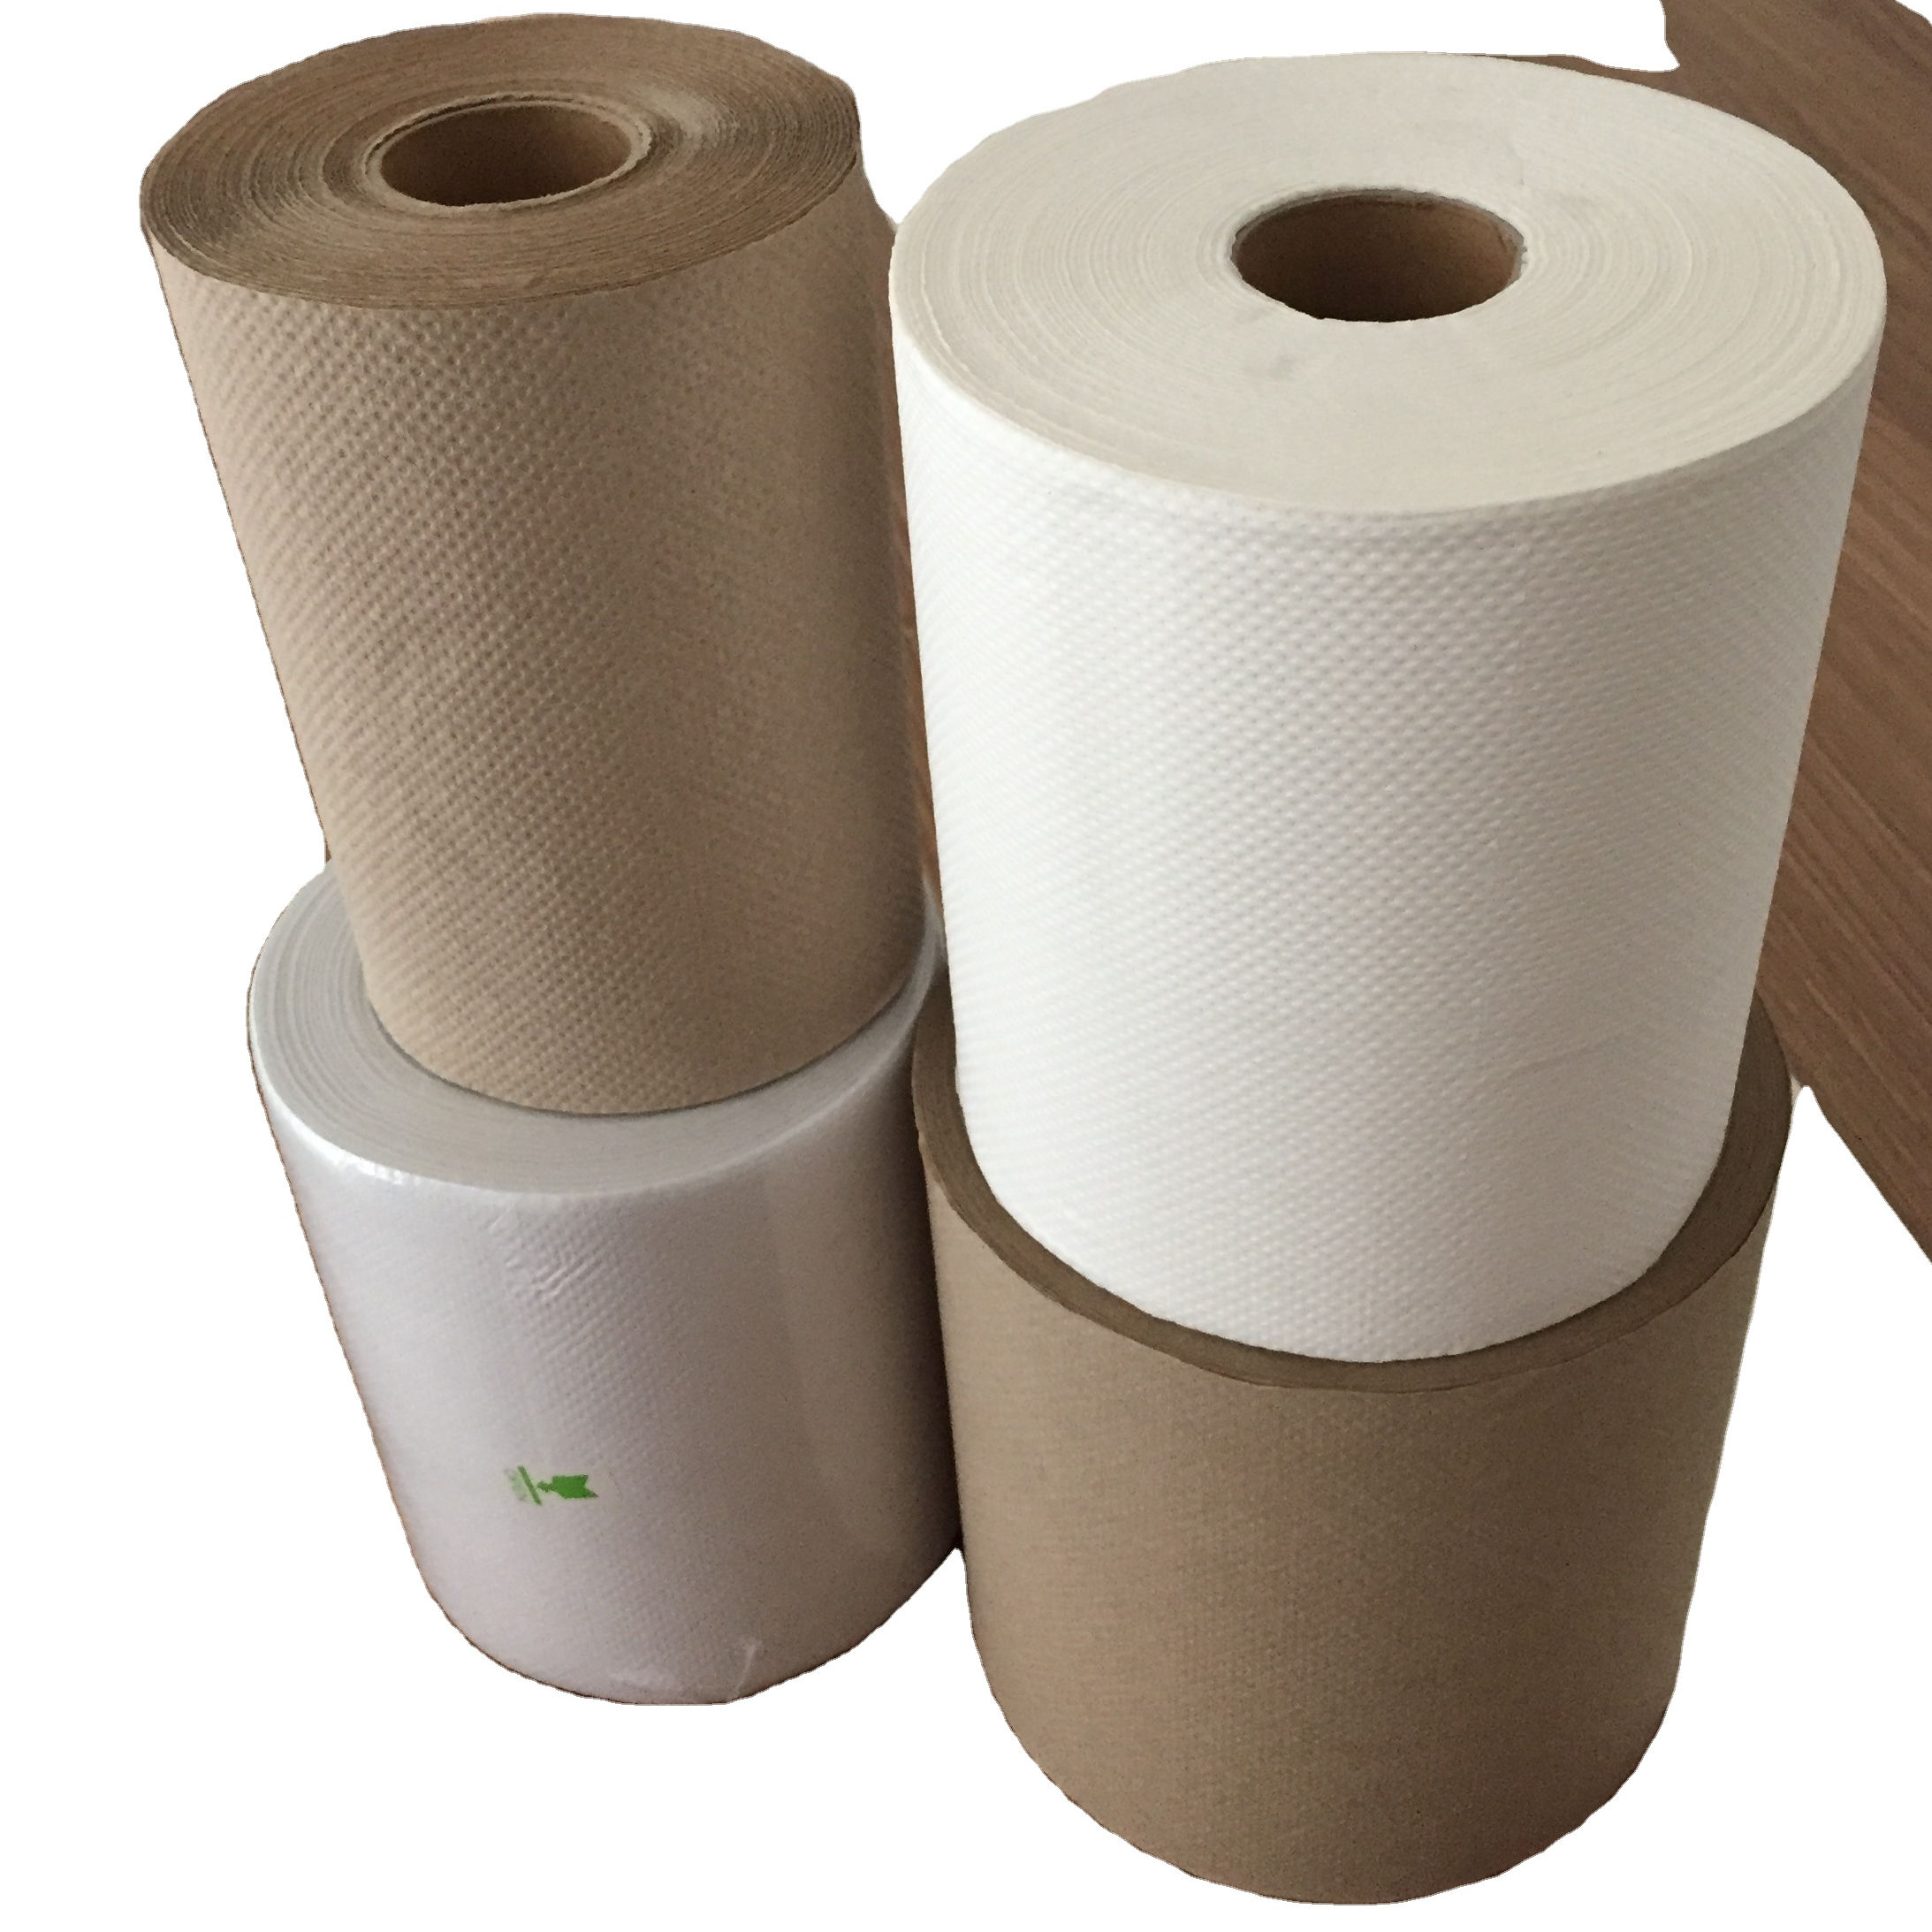 Hand paper towel rolls tissue papers in rolls